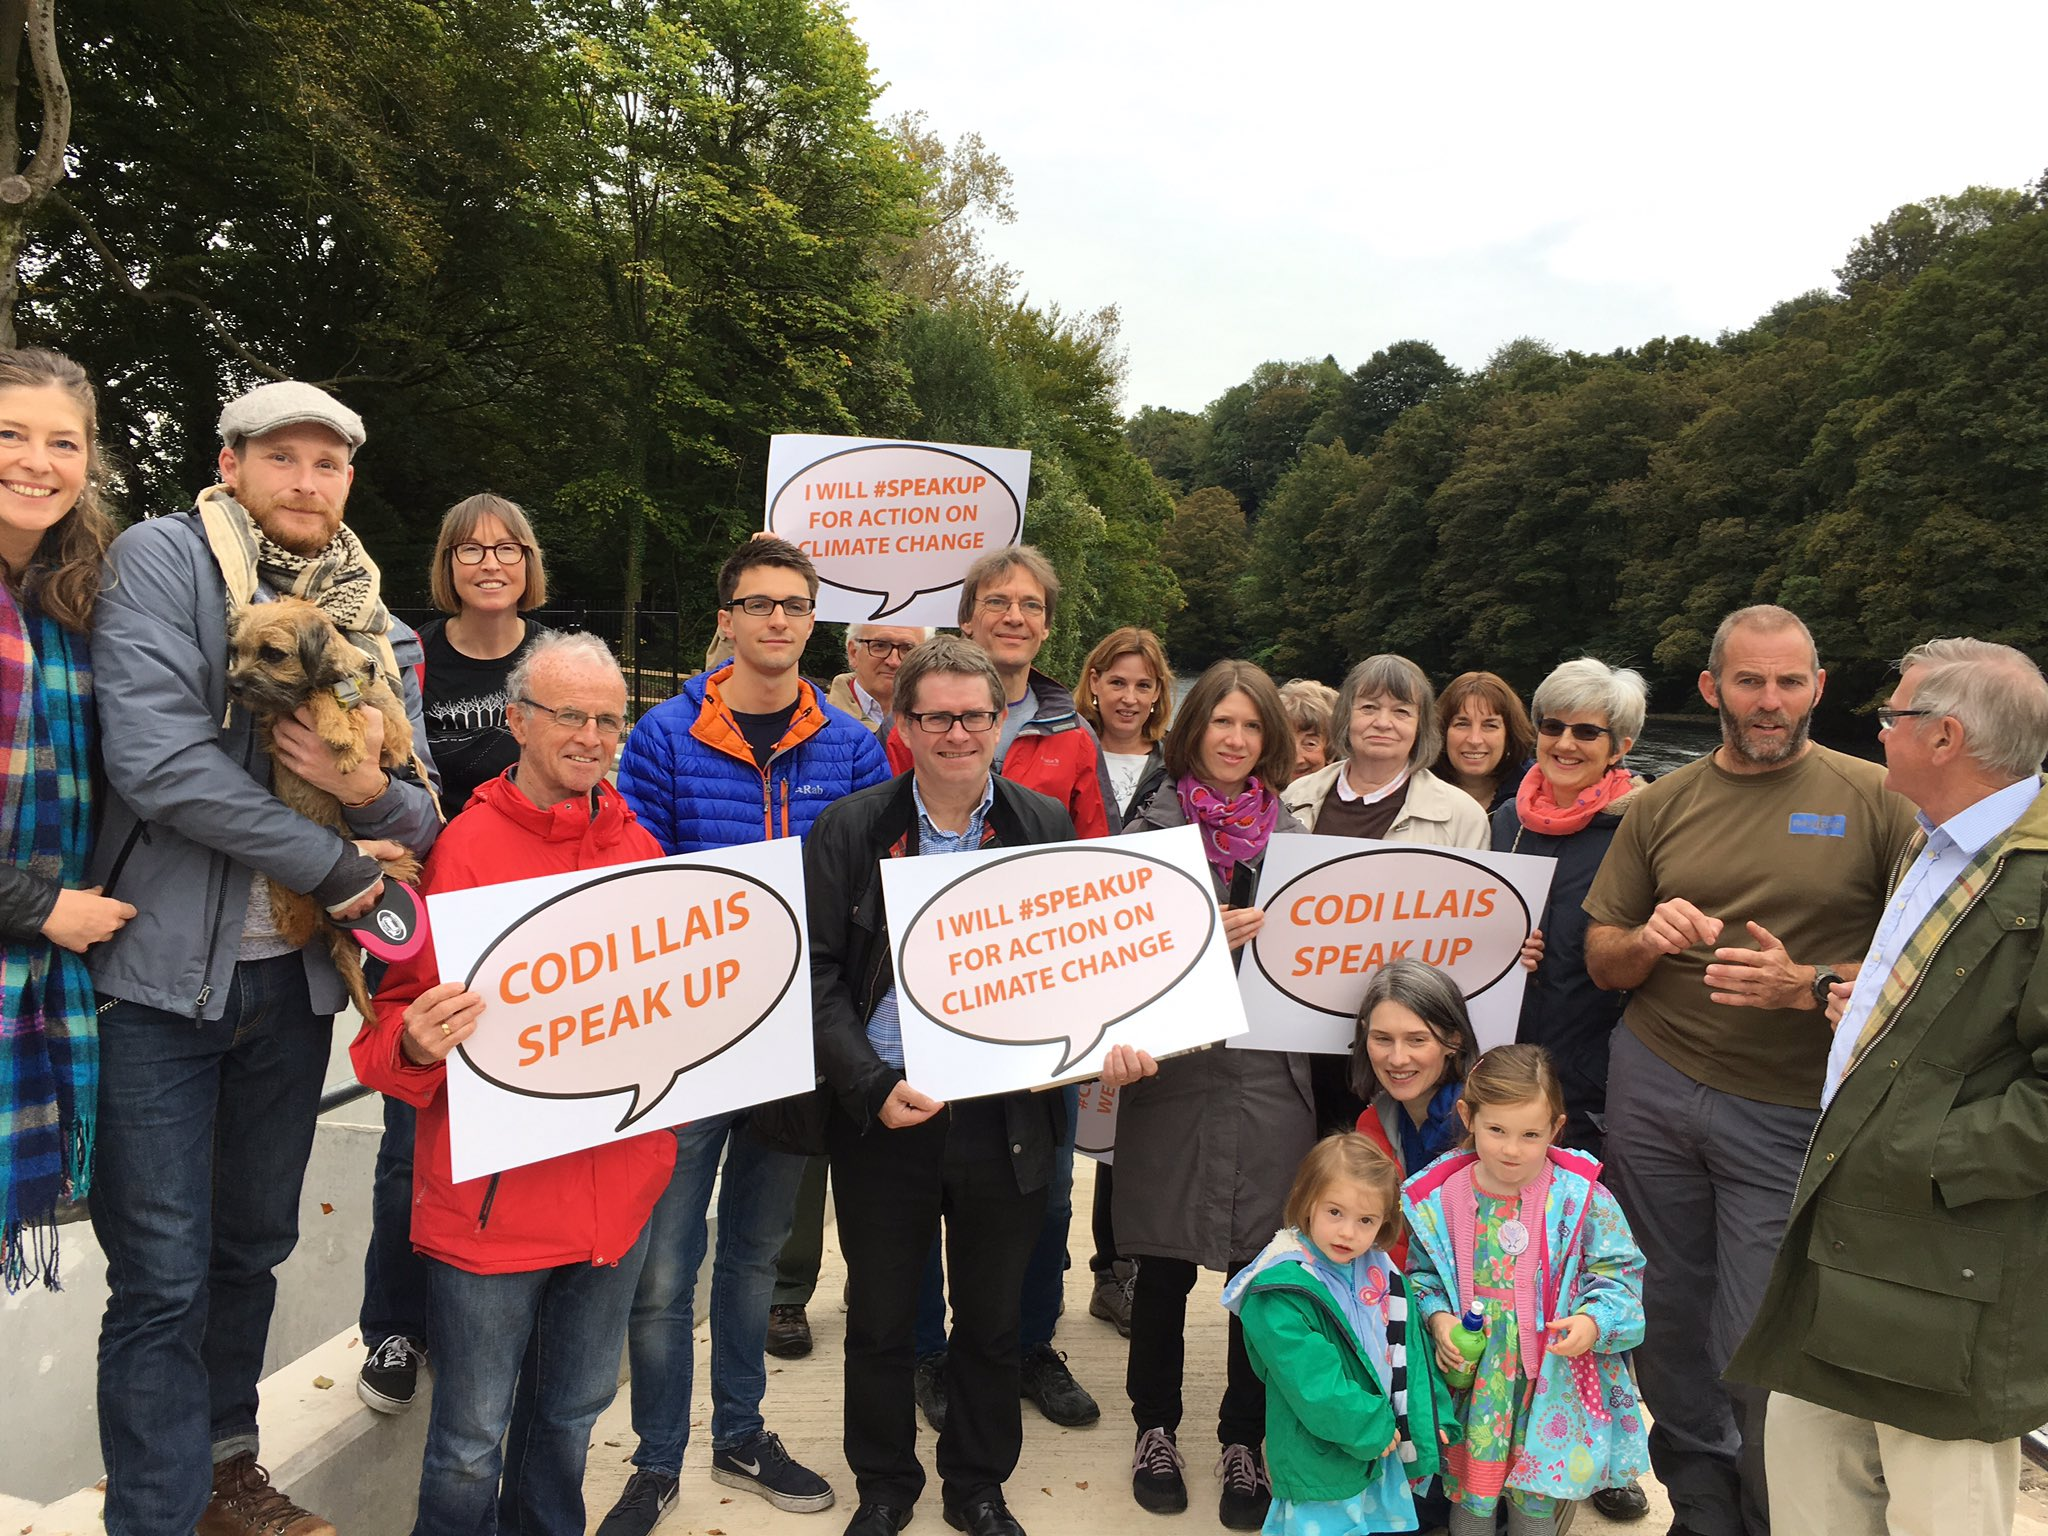 Great morning with @SCCCymru Speak Up on climate change event.Visit to Radyr Weir with @KevinBrennanMP Impressive council staff commitment. https://t.co/u7DEbKcT37